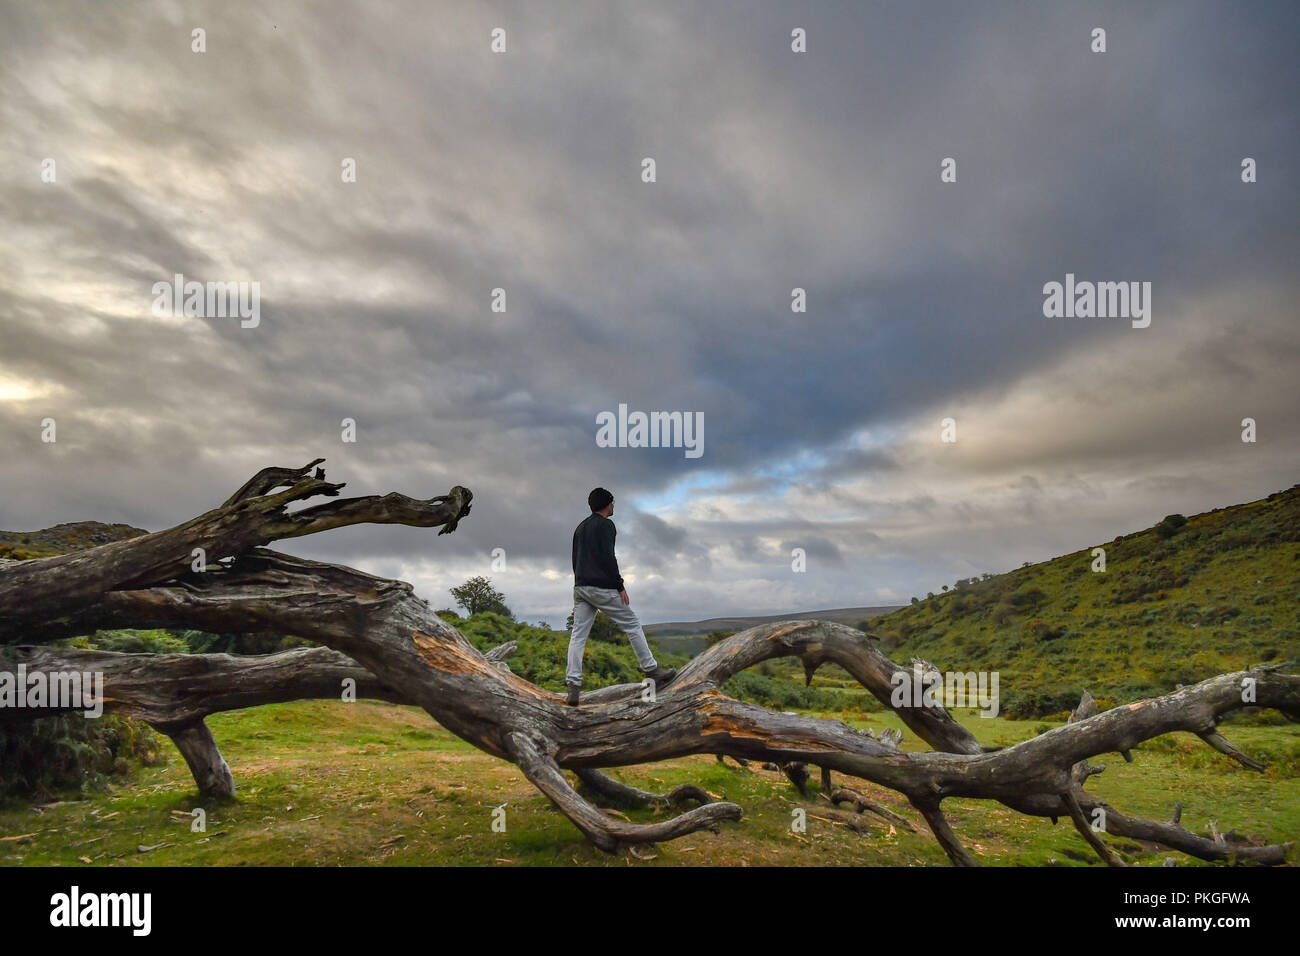 Man standing on fallen tree on Dartmoor looking towards a cloudy sky - Stock Image